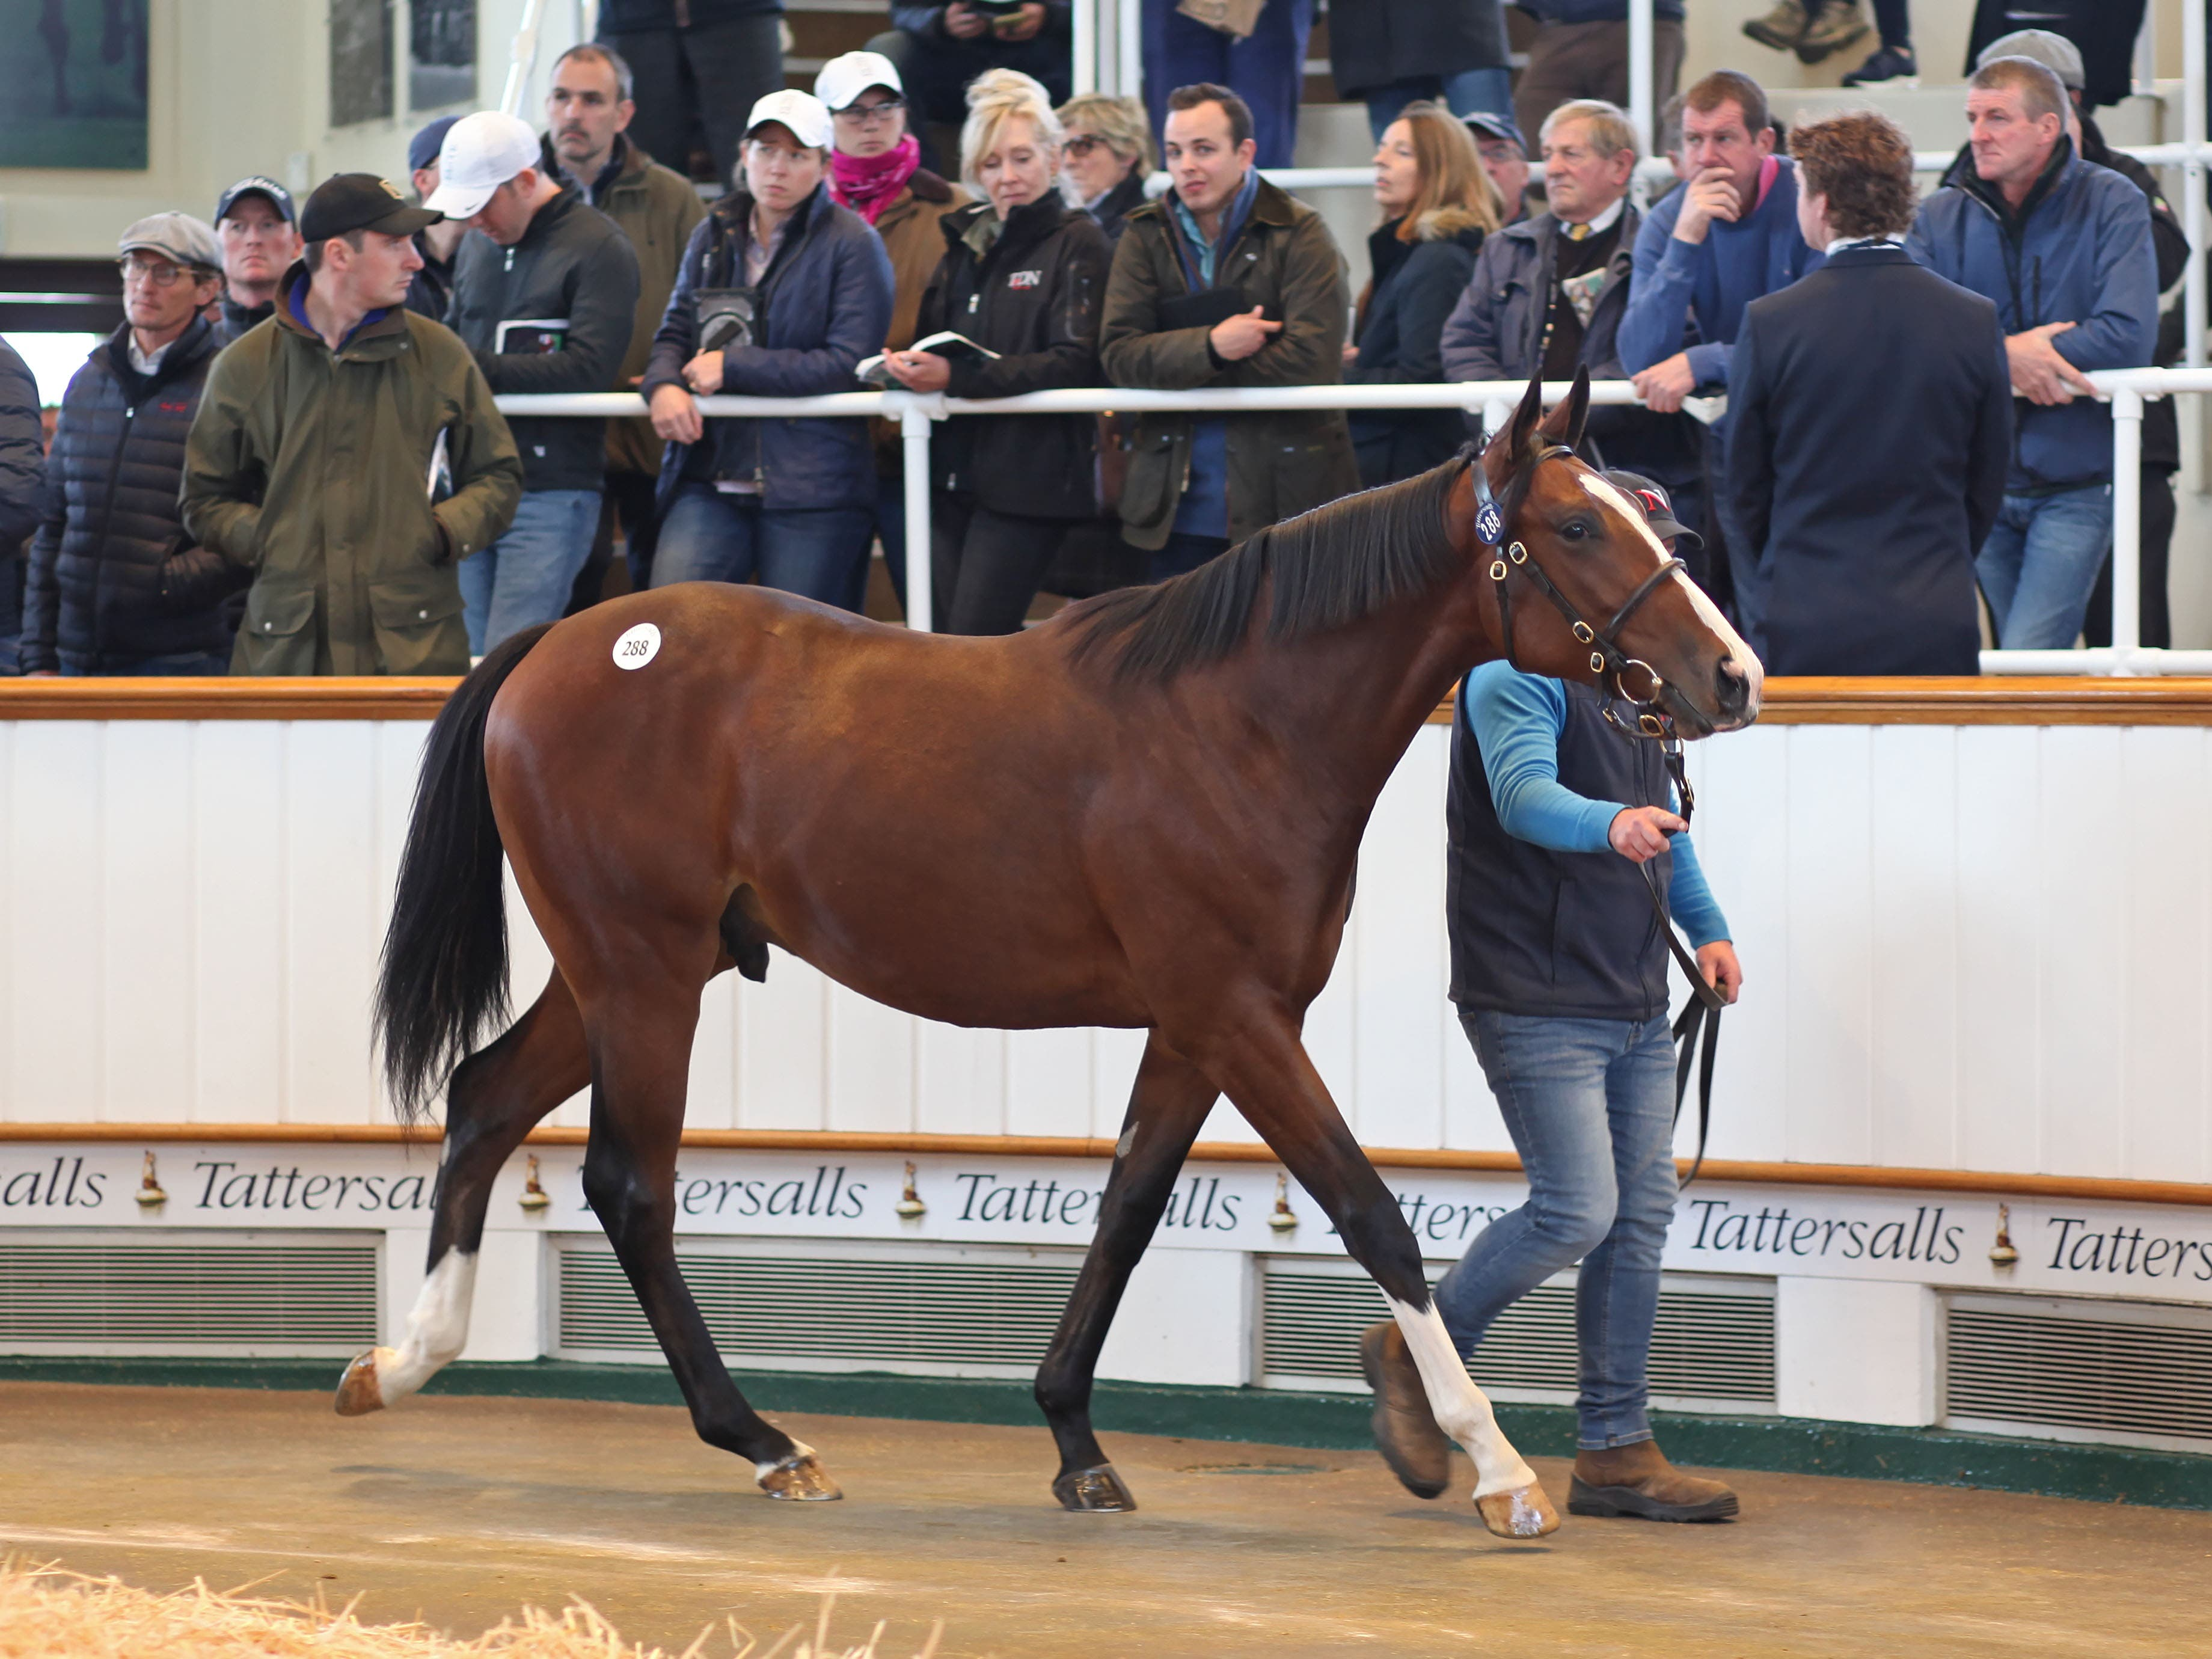 Lot 288, a Frankel half-brother to Golden Horn, was the start of day two of the Tattersalls sale (Tattersalls)